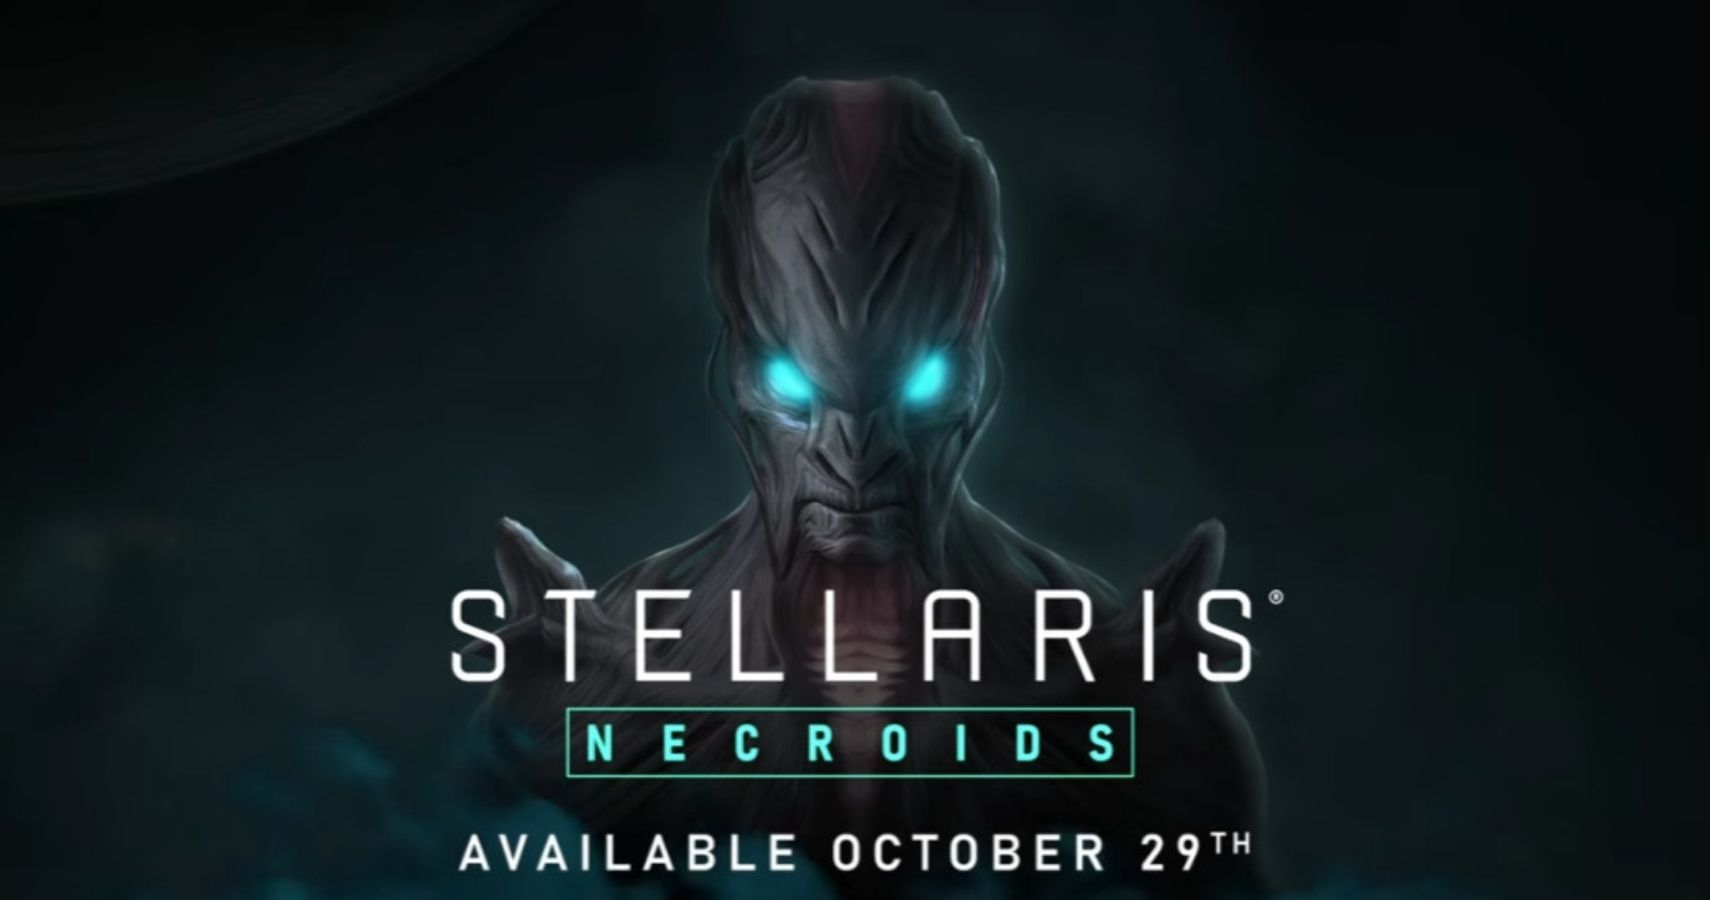 Necroids Species Pack Brings A Death Cult Of Reanimated Undead To Stellaris